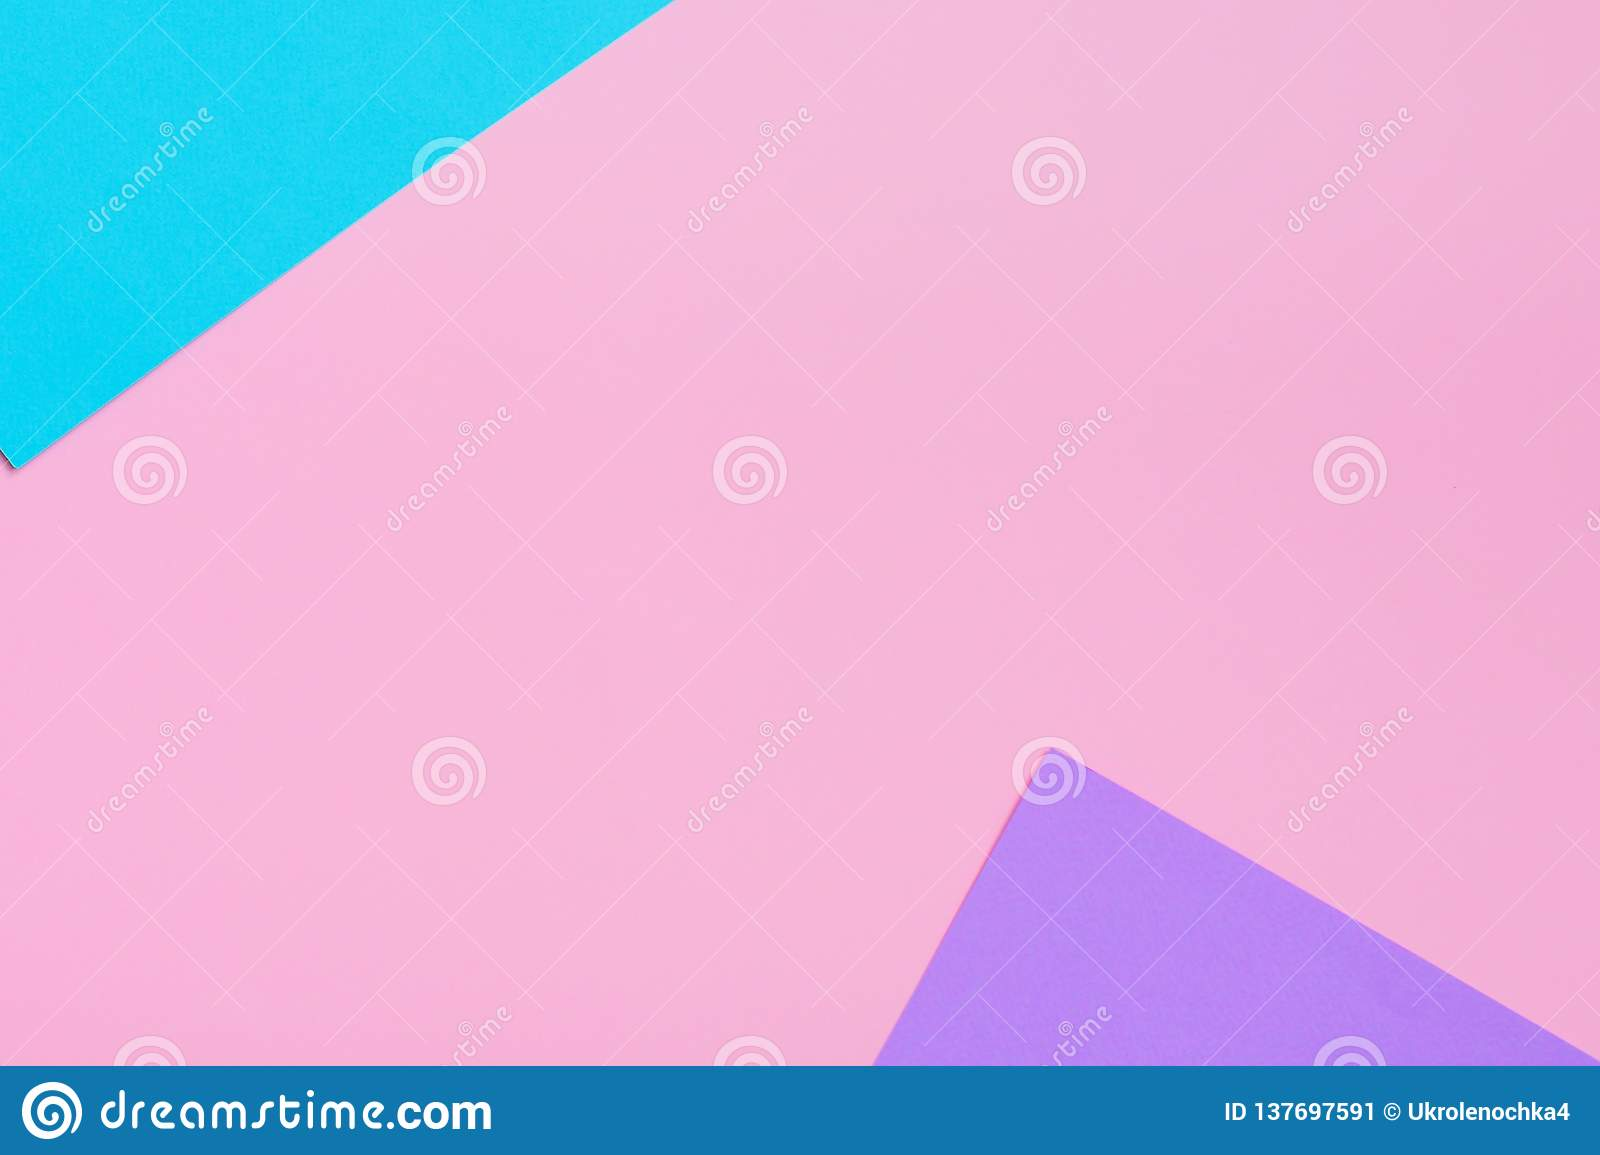 Soft pink, blue and purple background. Colorful texture. Flat lay. Minimal concept. Creative concept.